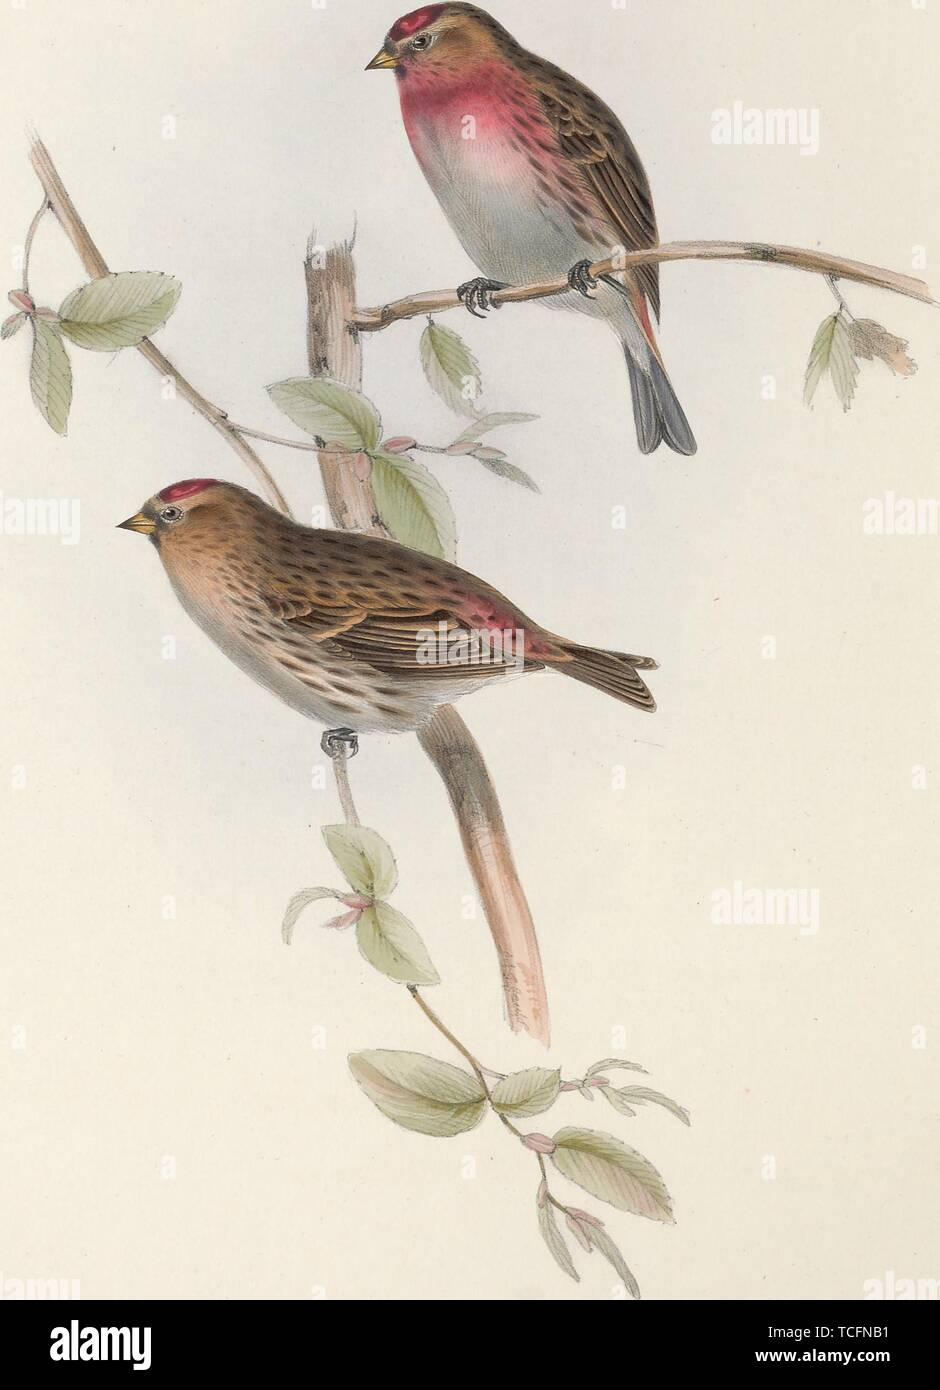 Engraved drawing of the Lesser Redpolls (Acanthis cabaret), from the book 'The birds of Europe' by John Gould, 1837. Courtesy Internet Archive. () - Stock Image